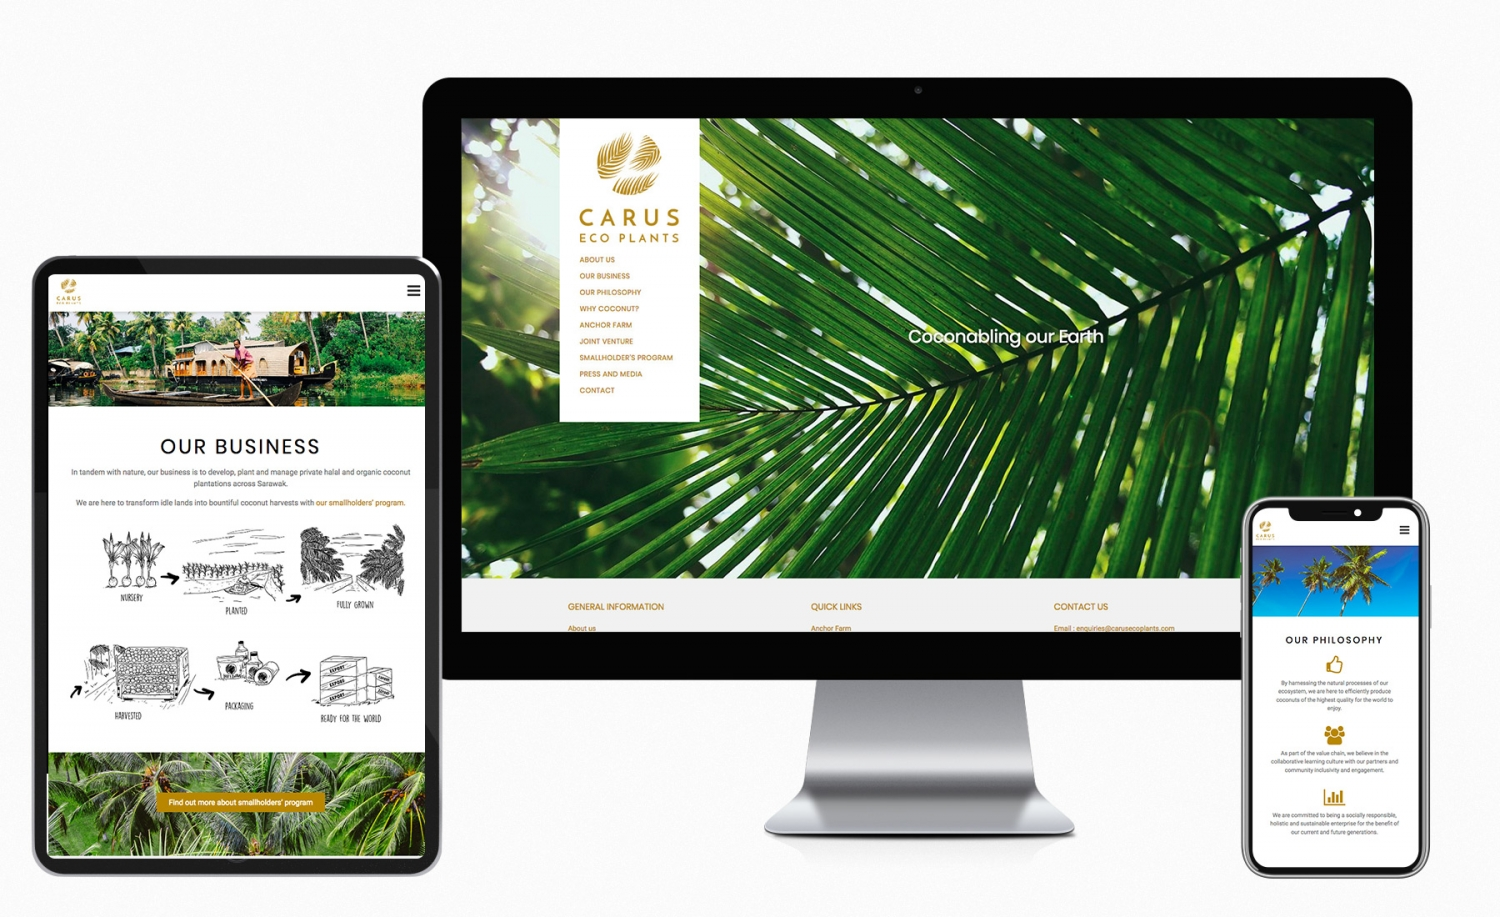 Carus Eco Plants corporate website design and setup